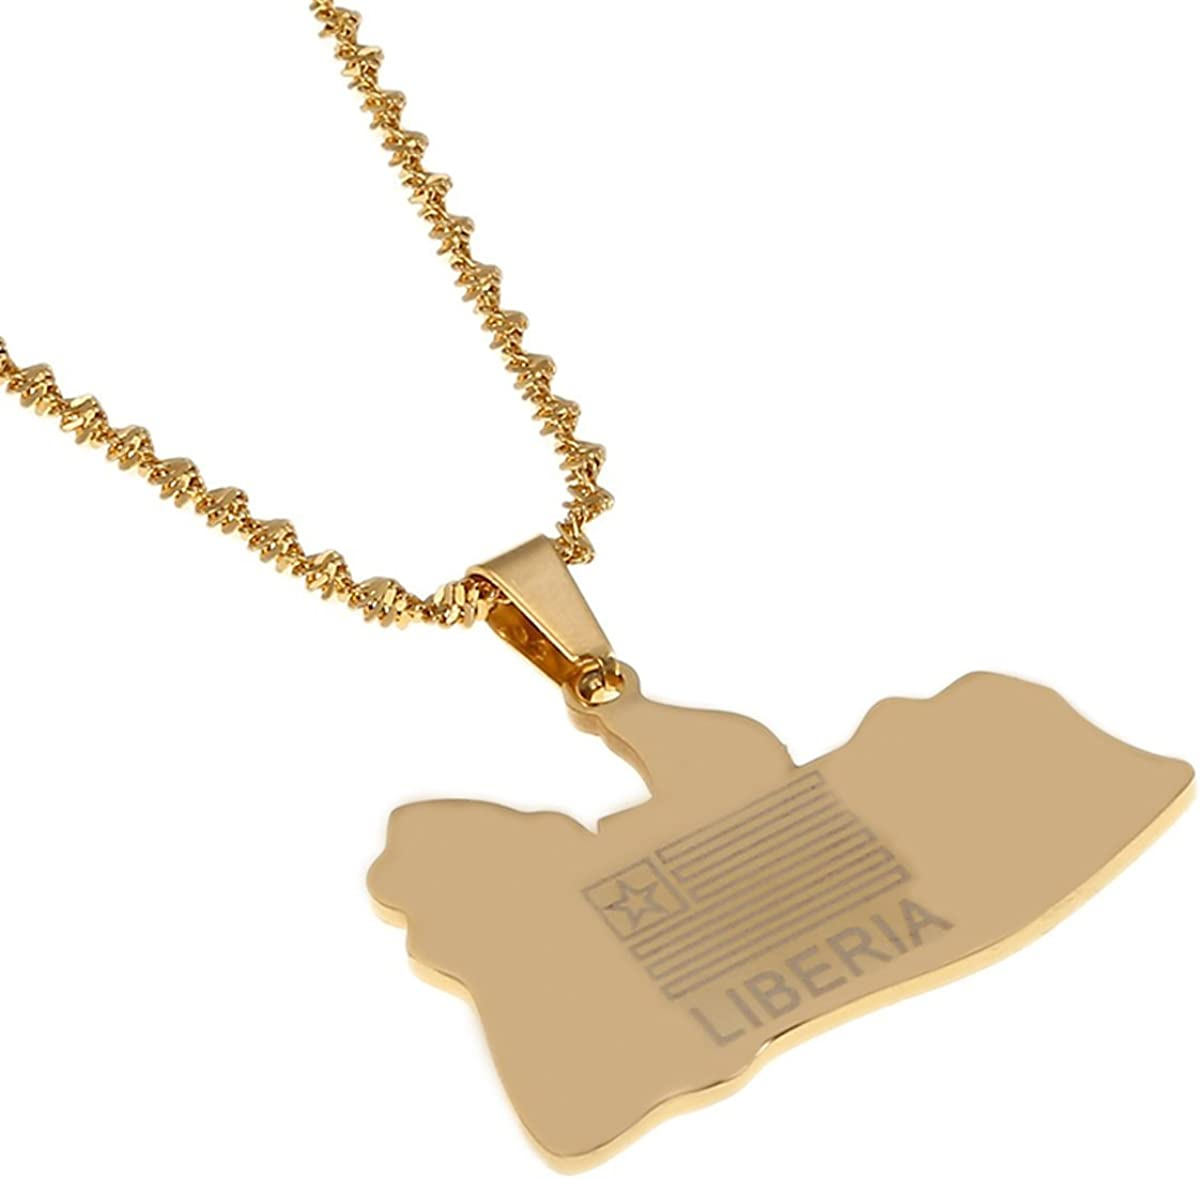 Liberia Map Flag Gold Color Charms Pendant Necklaces Liberians Jewellery